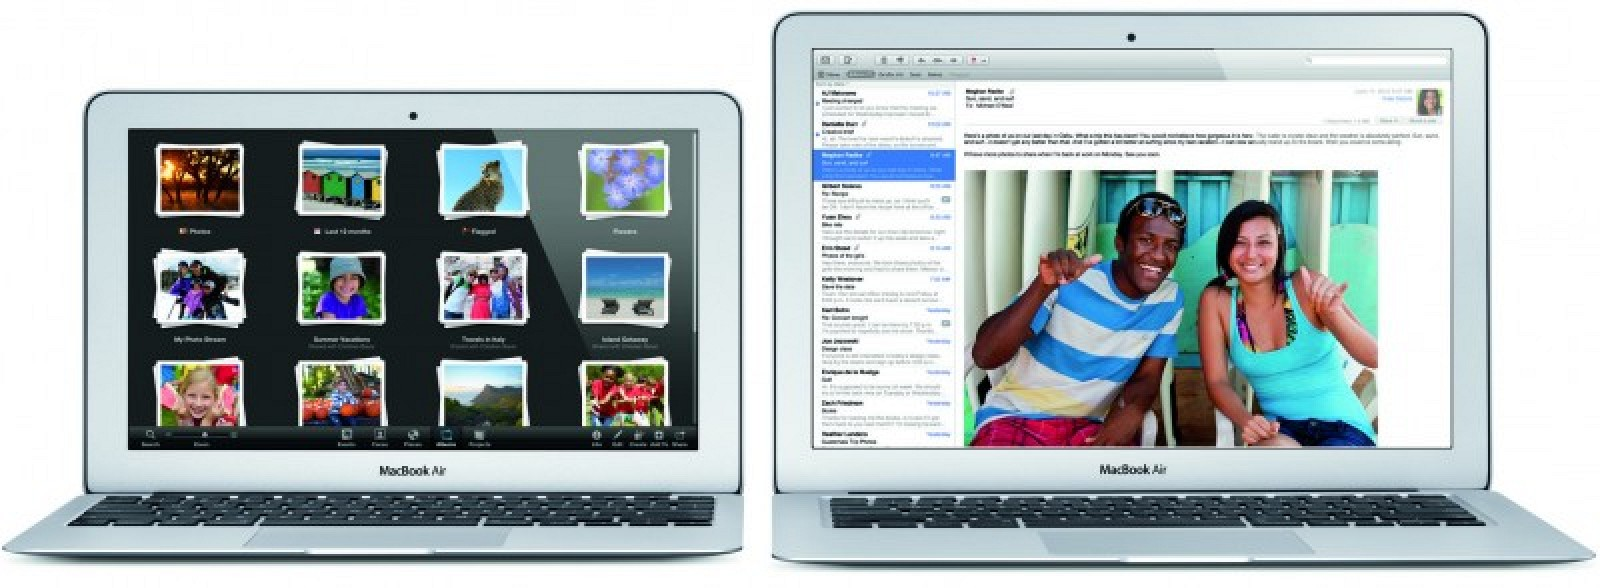 12 retina macbook air and low price imac likely in 2014 for Www dreamhome com